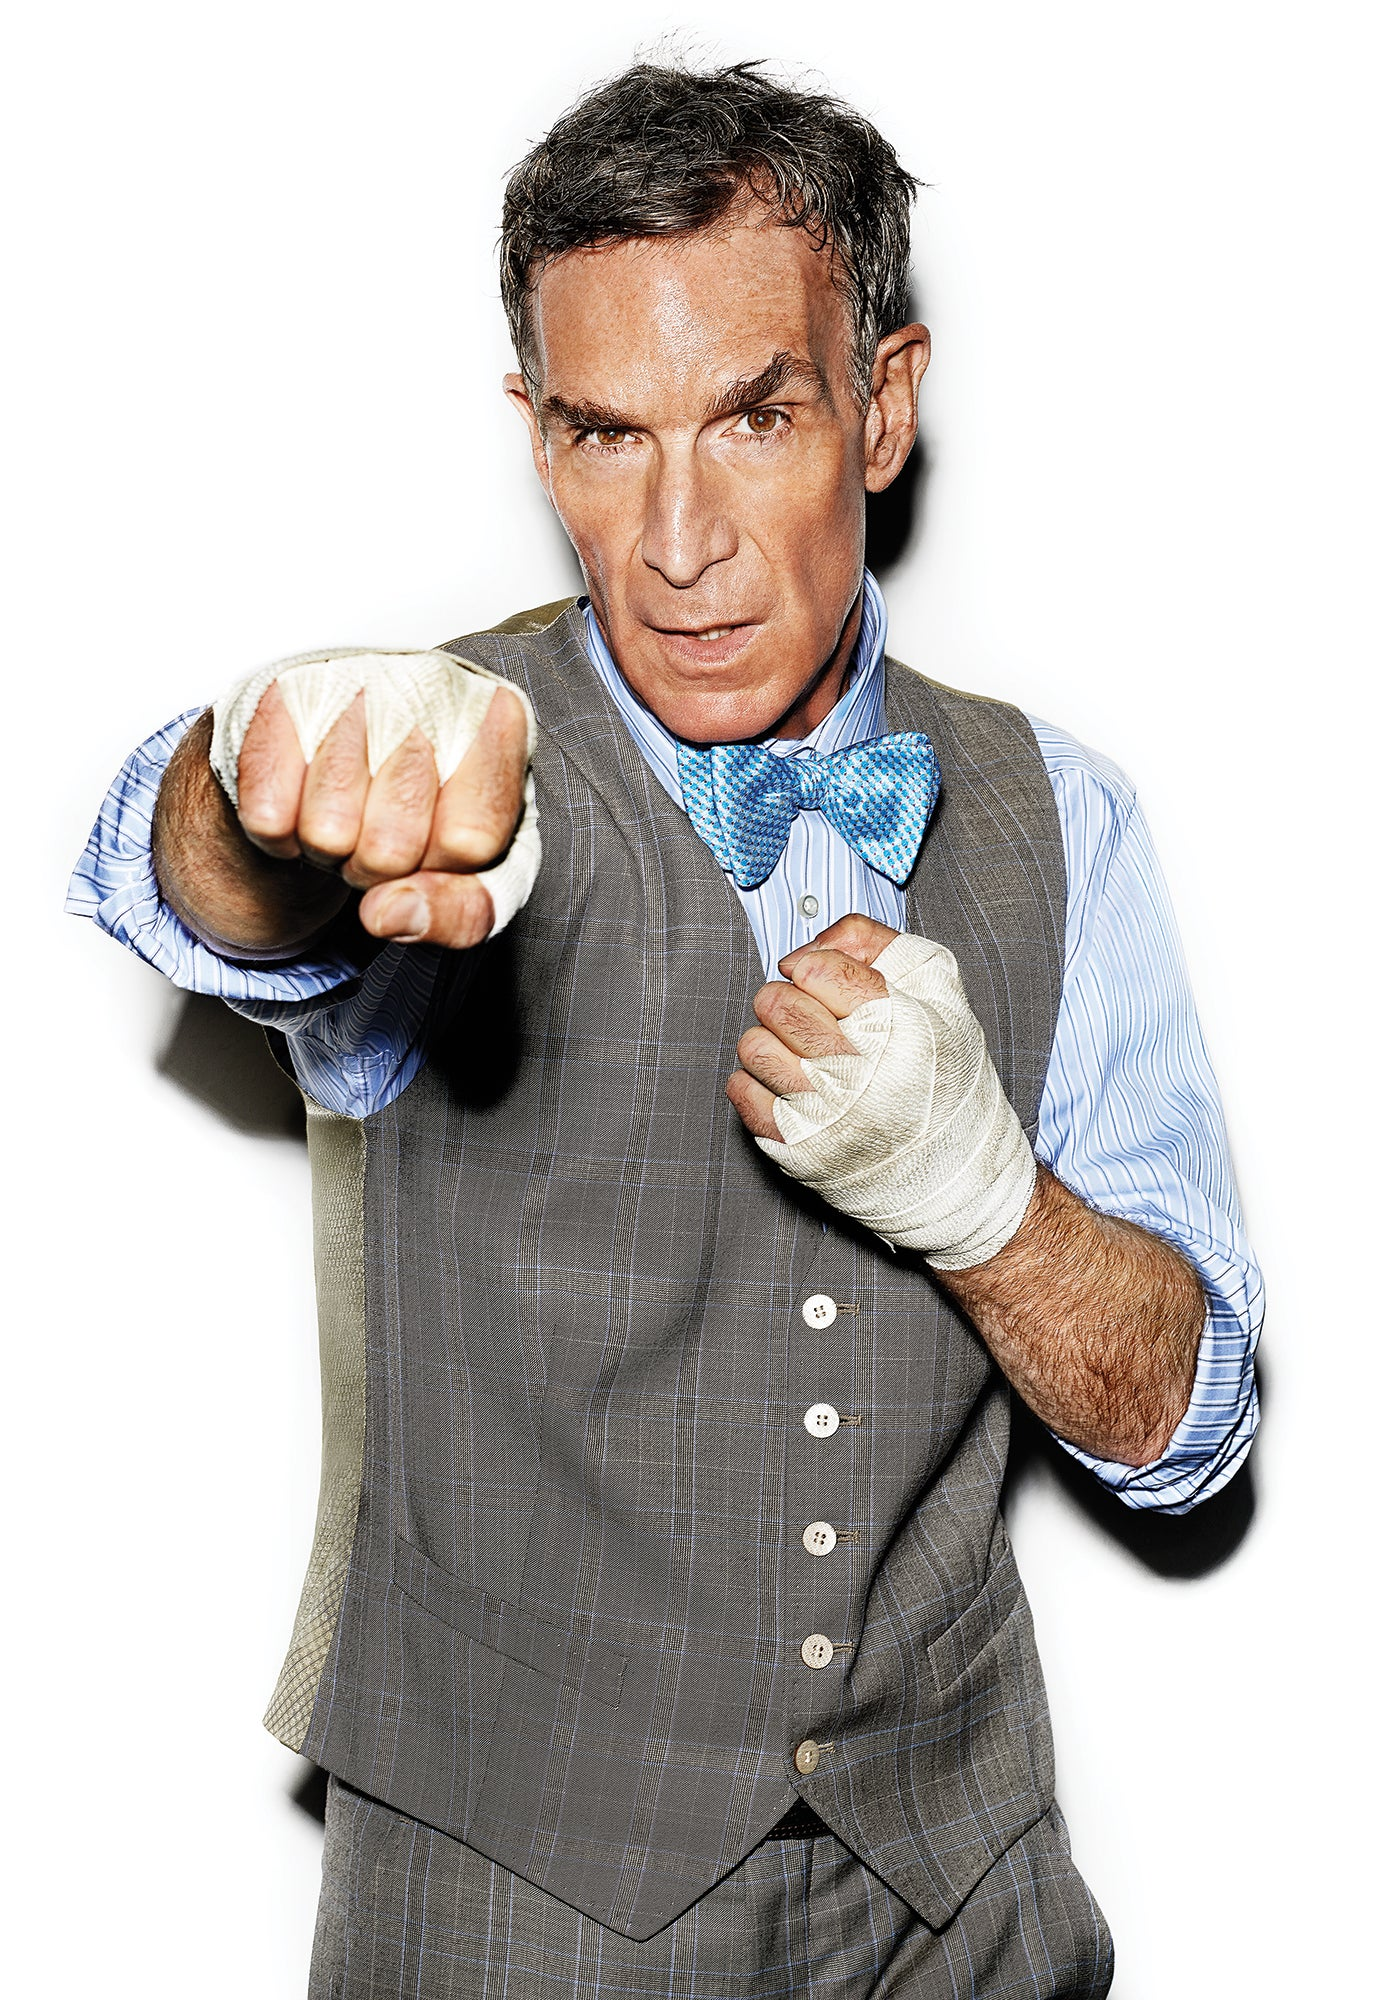 Bill Nye throwing a punch